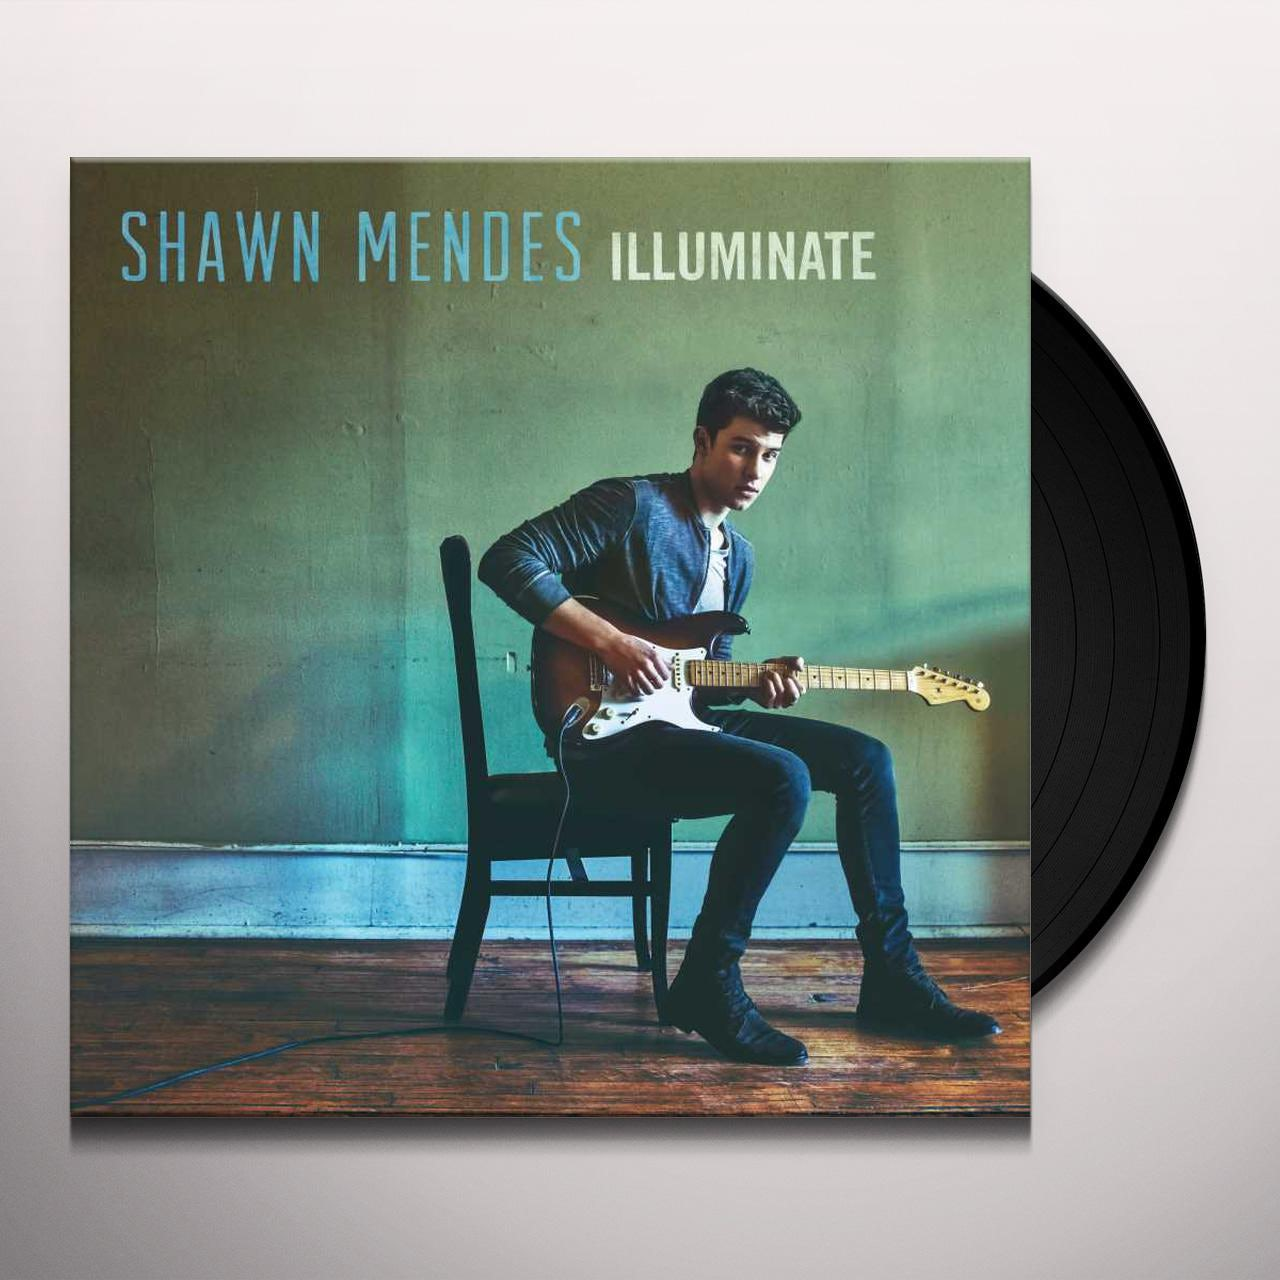 Shawn Mendes ILLUMINATE Vinyl Record